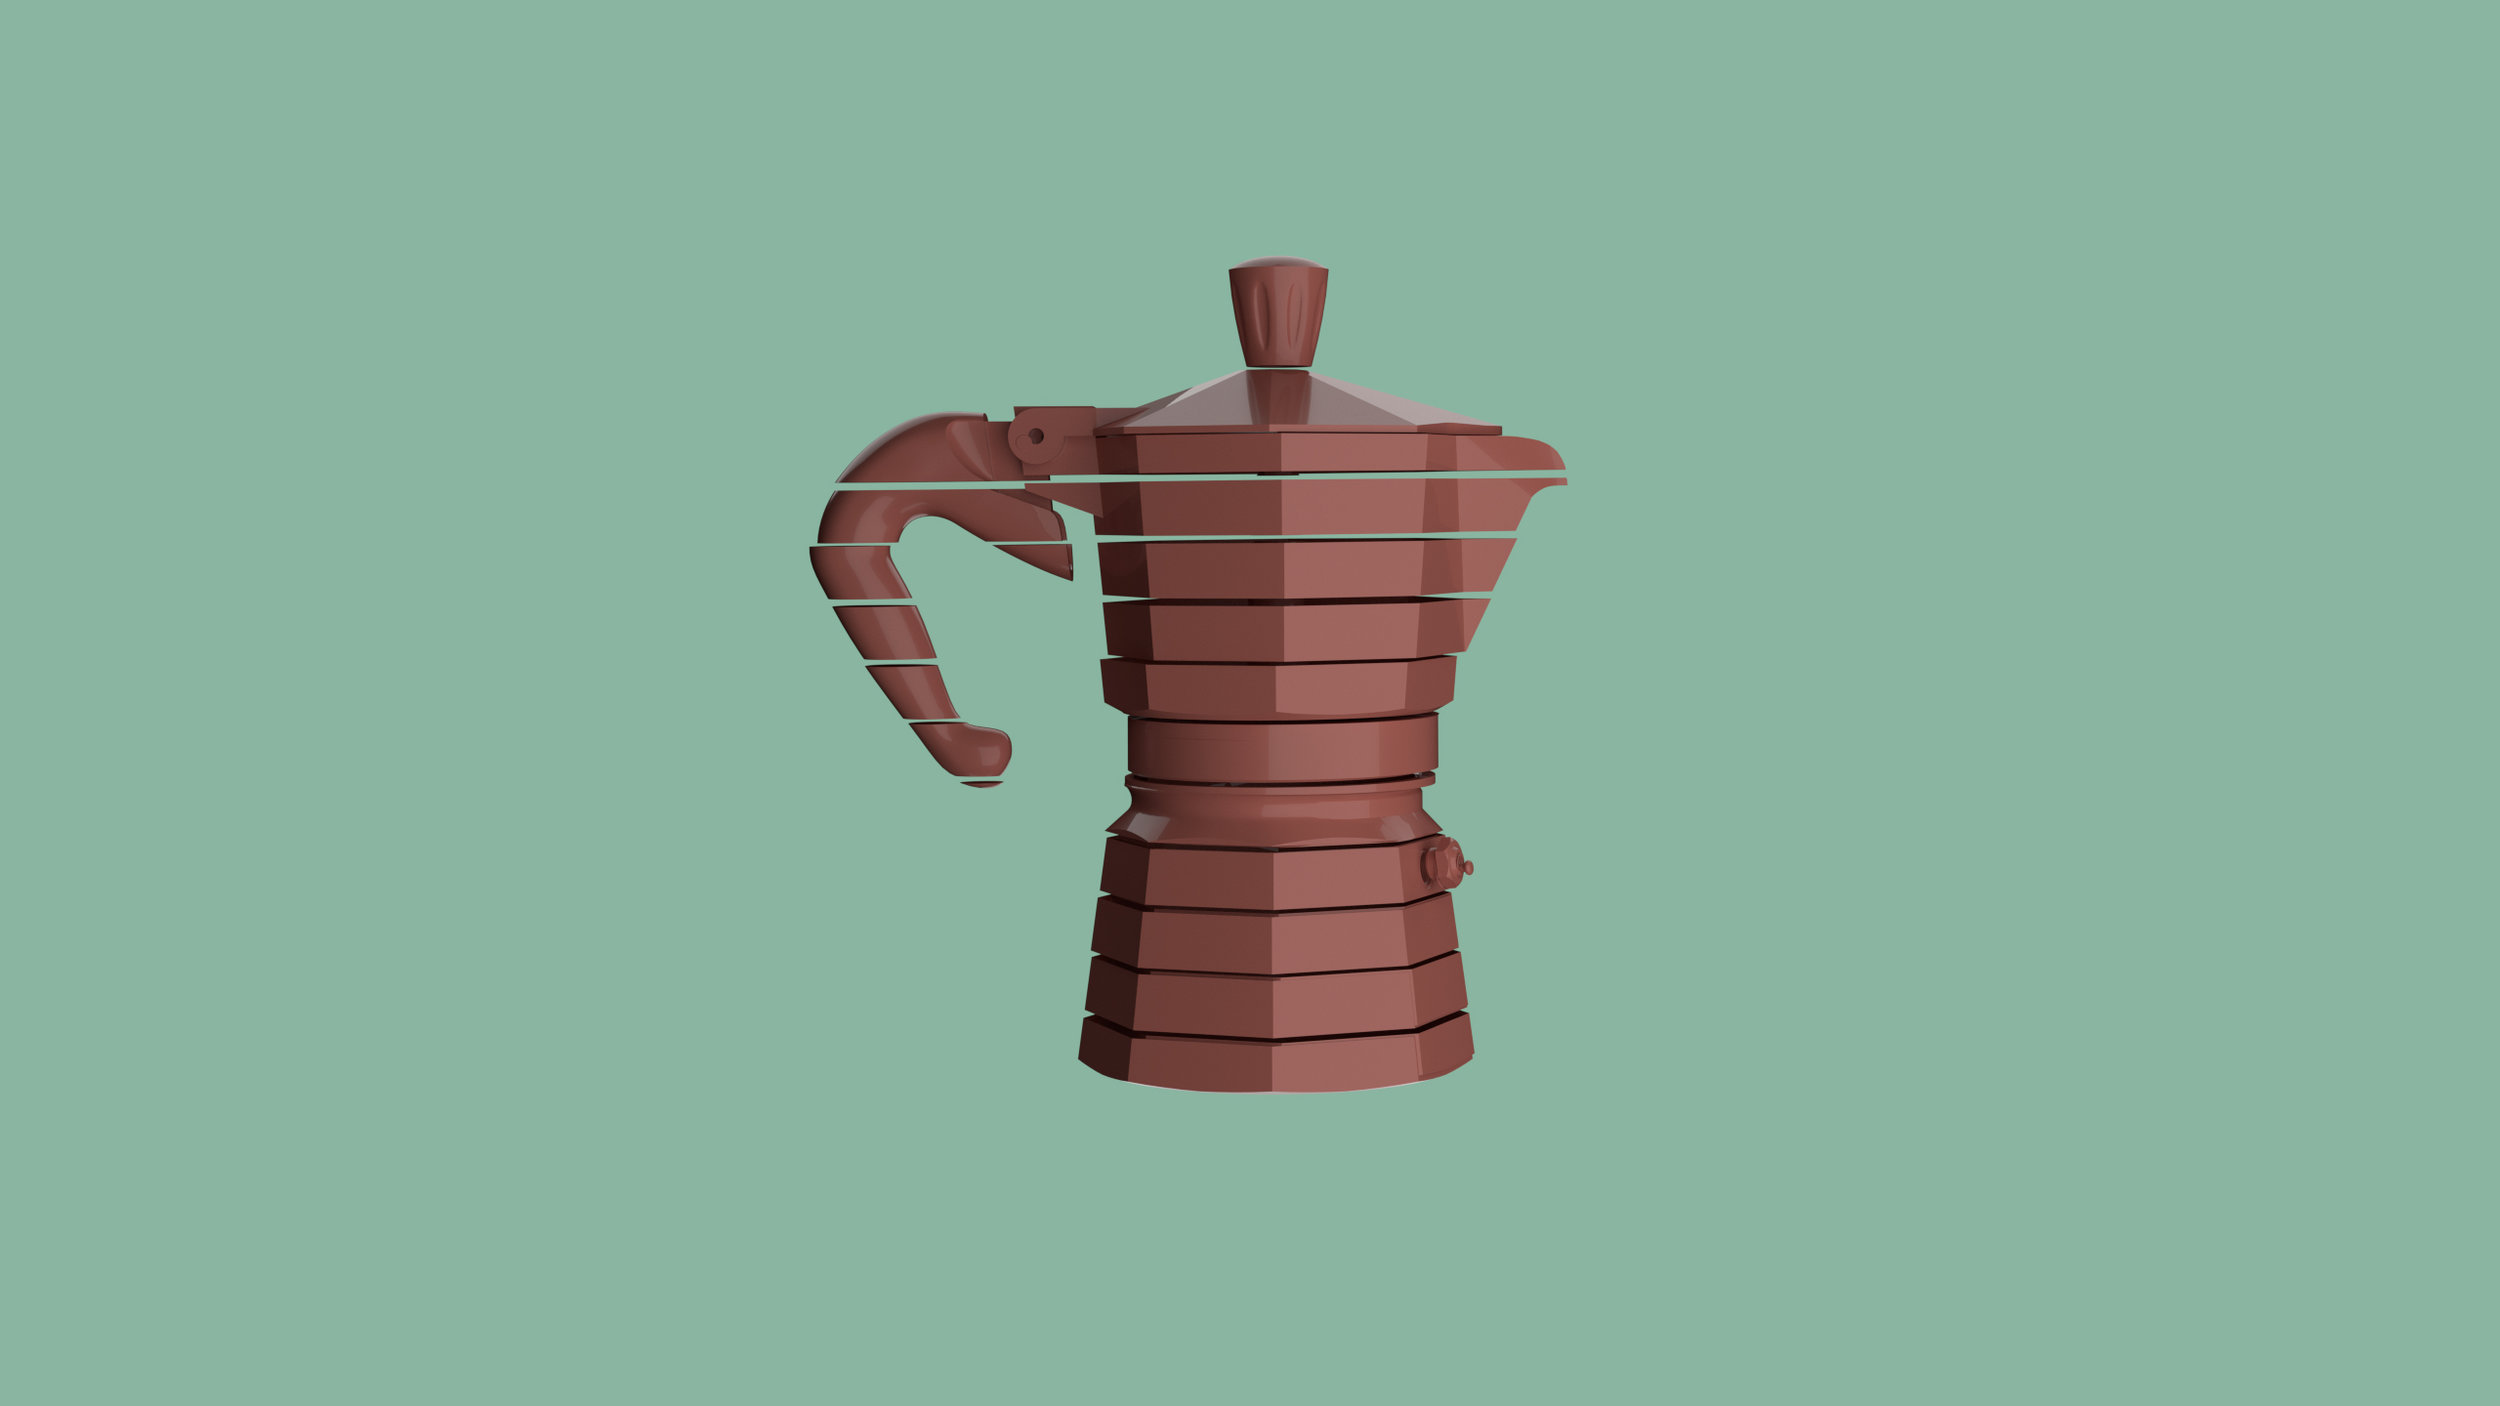 BIALETTI-SQUARESPACE-16X9-SLICED_Animation-Cam_a0044.jpg